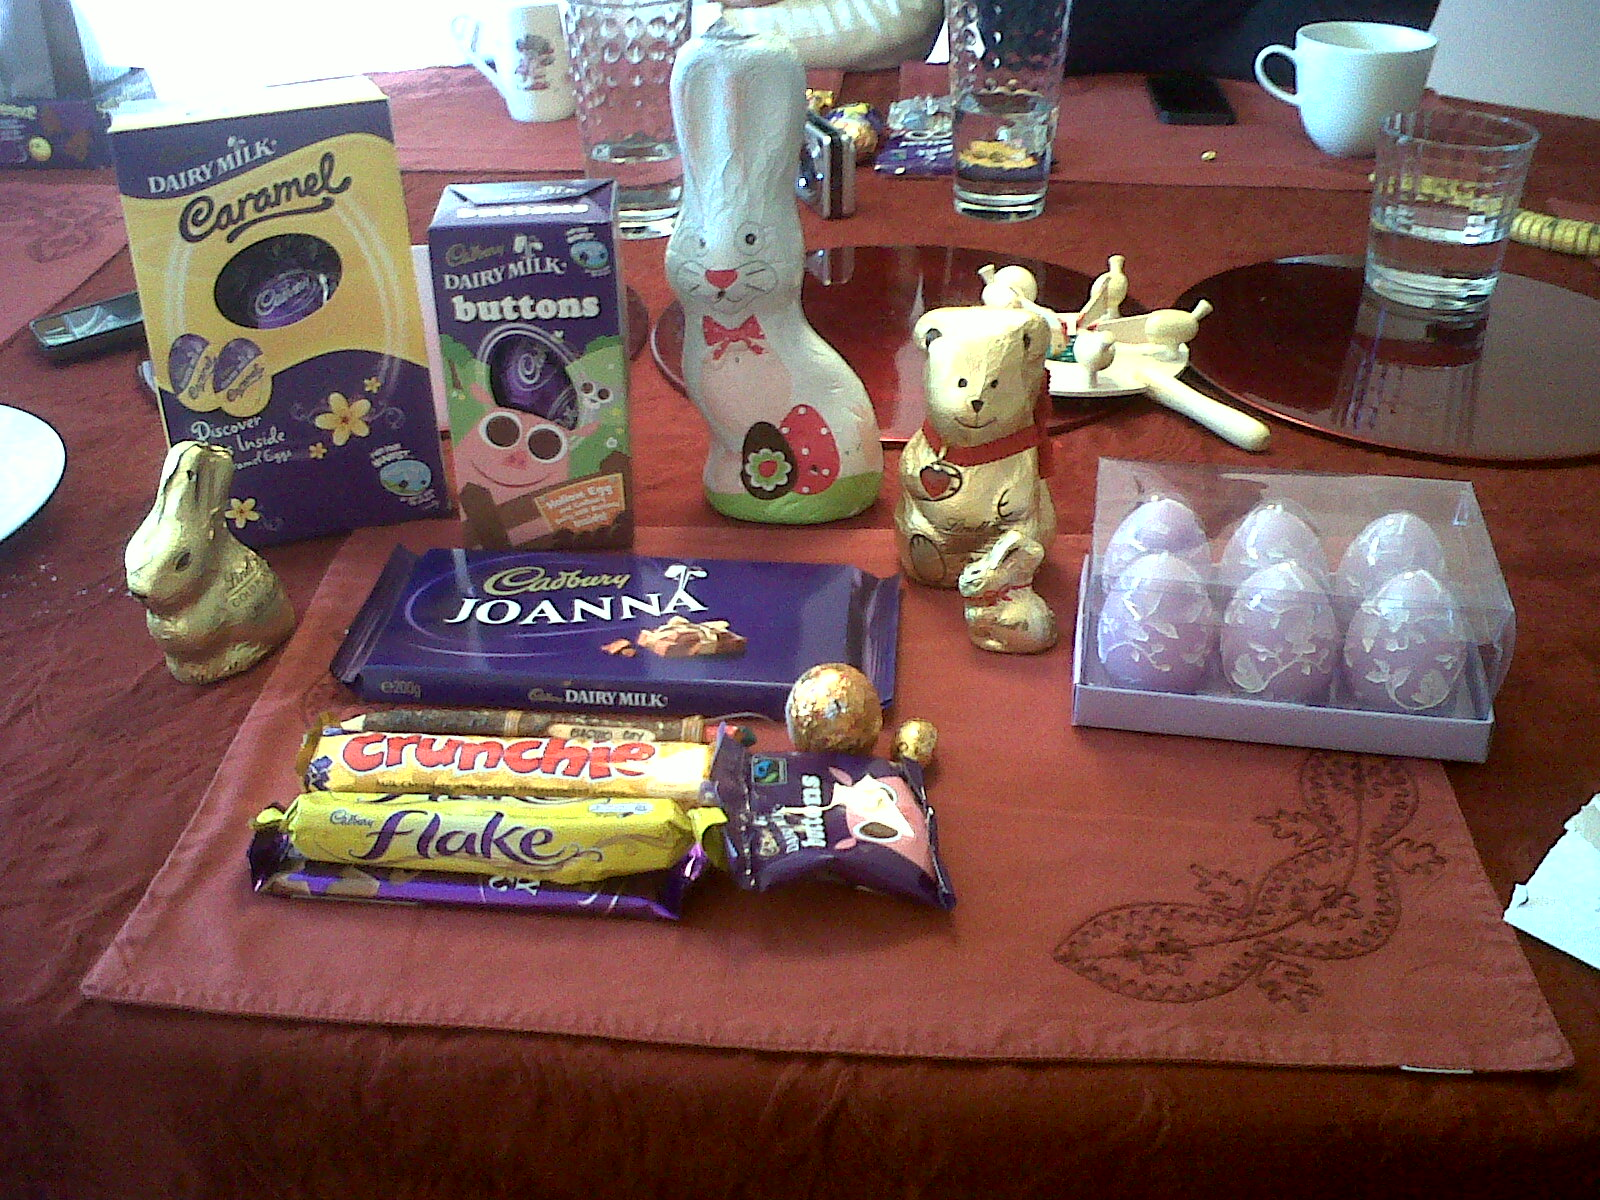 Chocolate galore and some egg shaped candles!